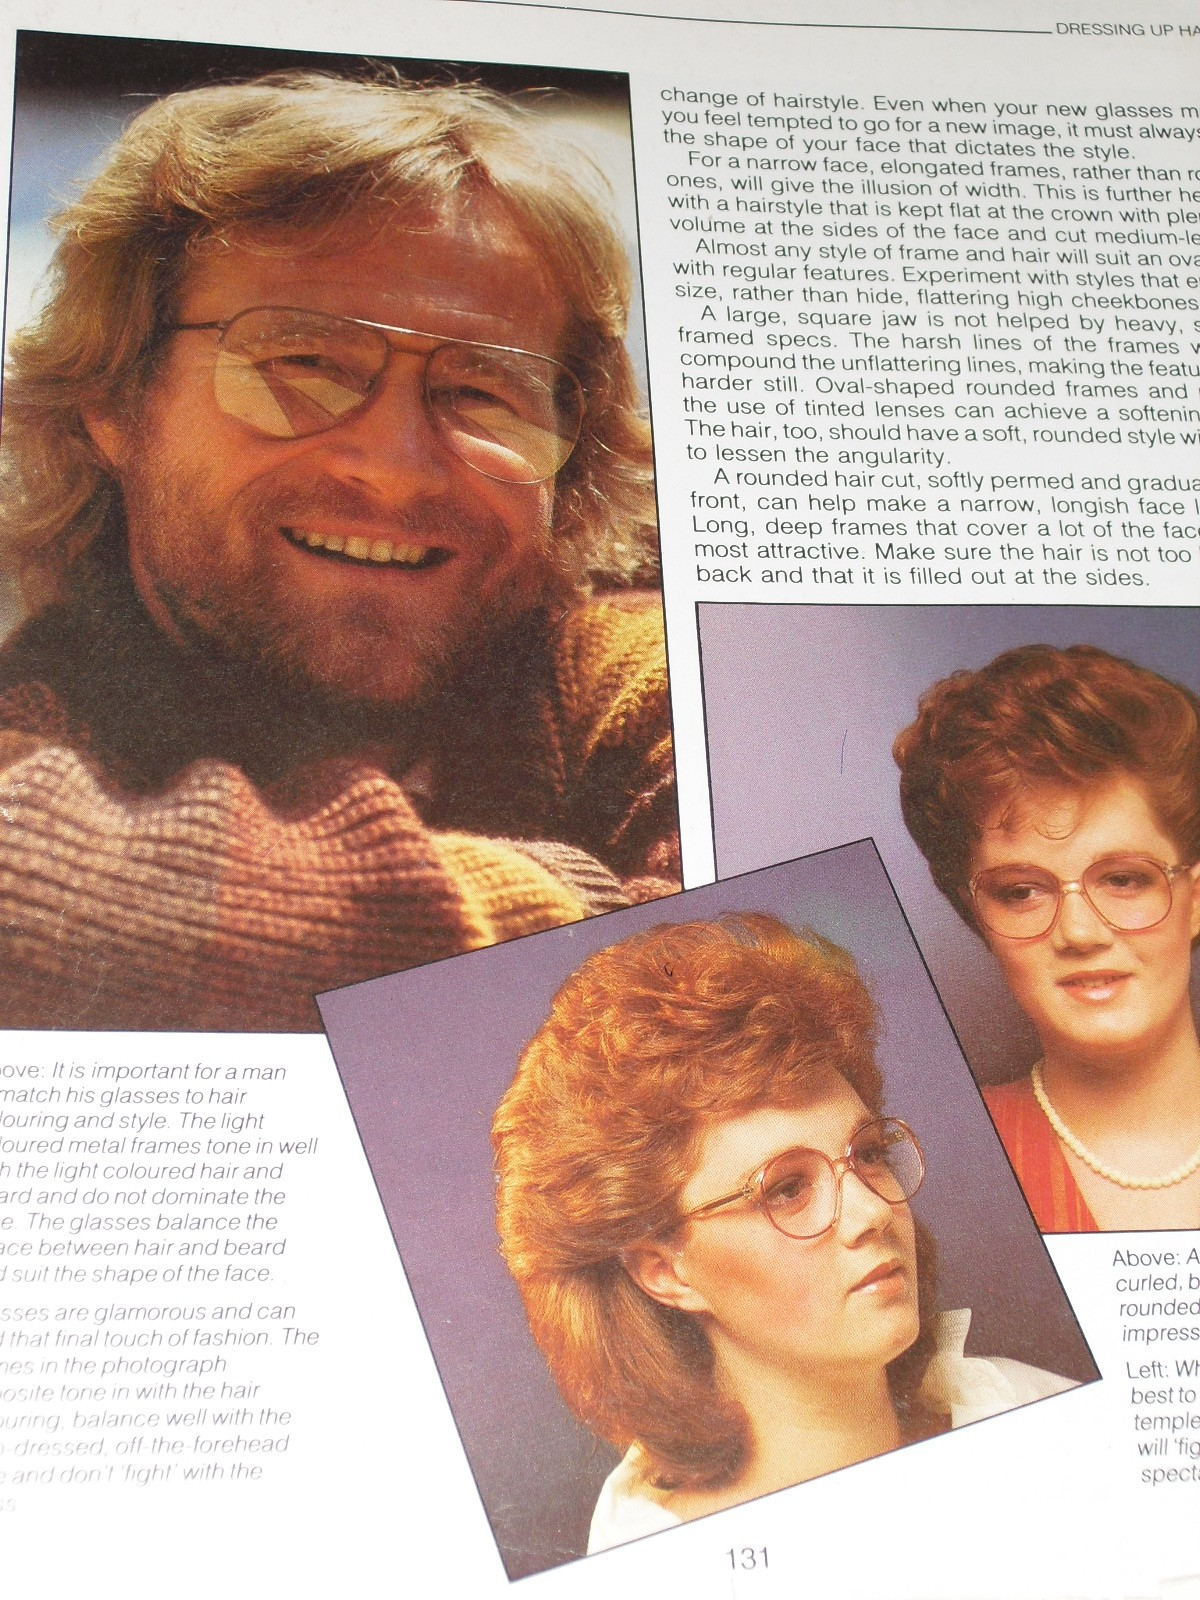 Picture of man, women wearing glasses with styled 80's hair